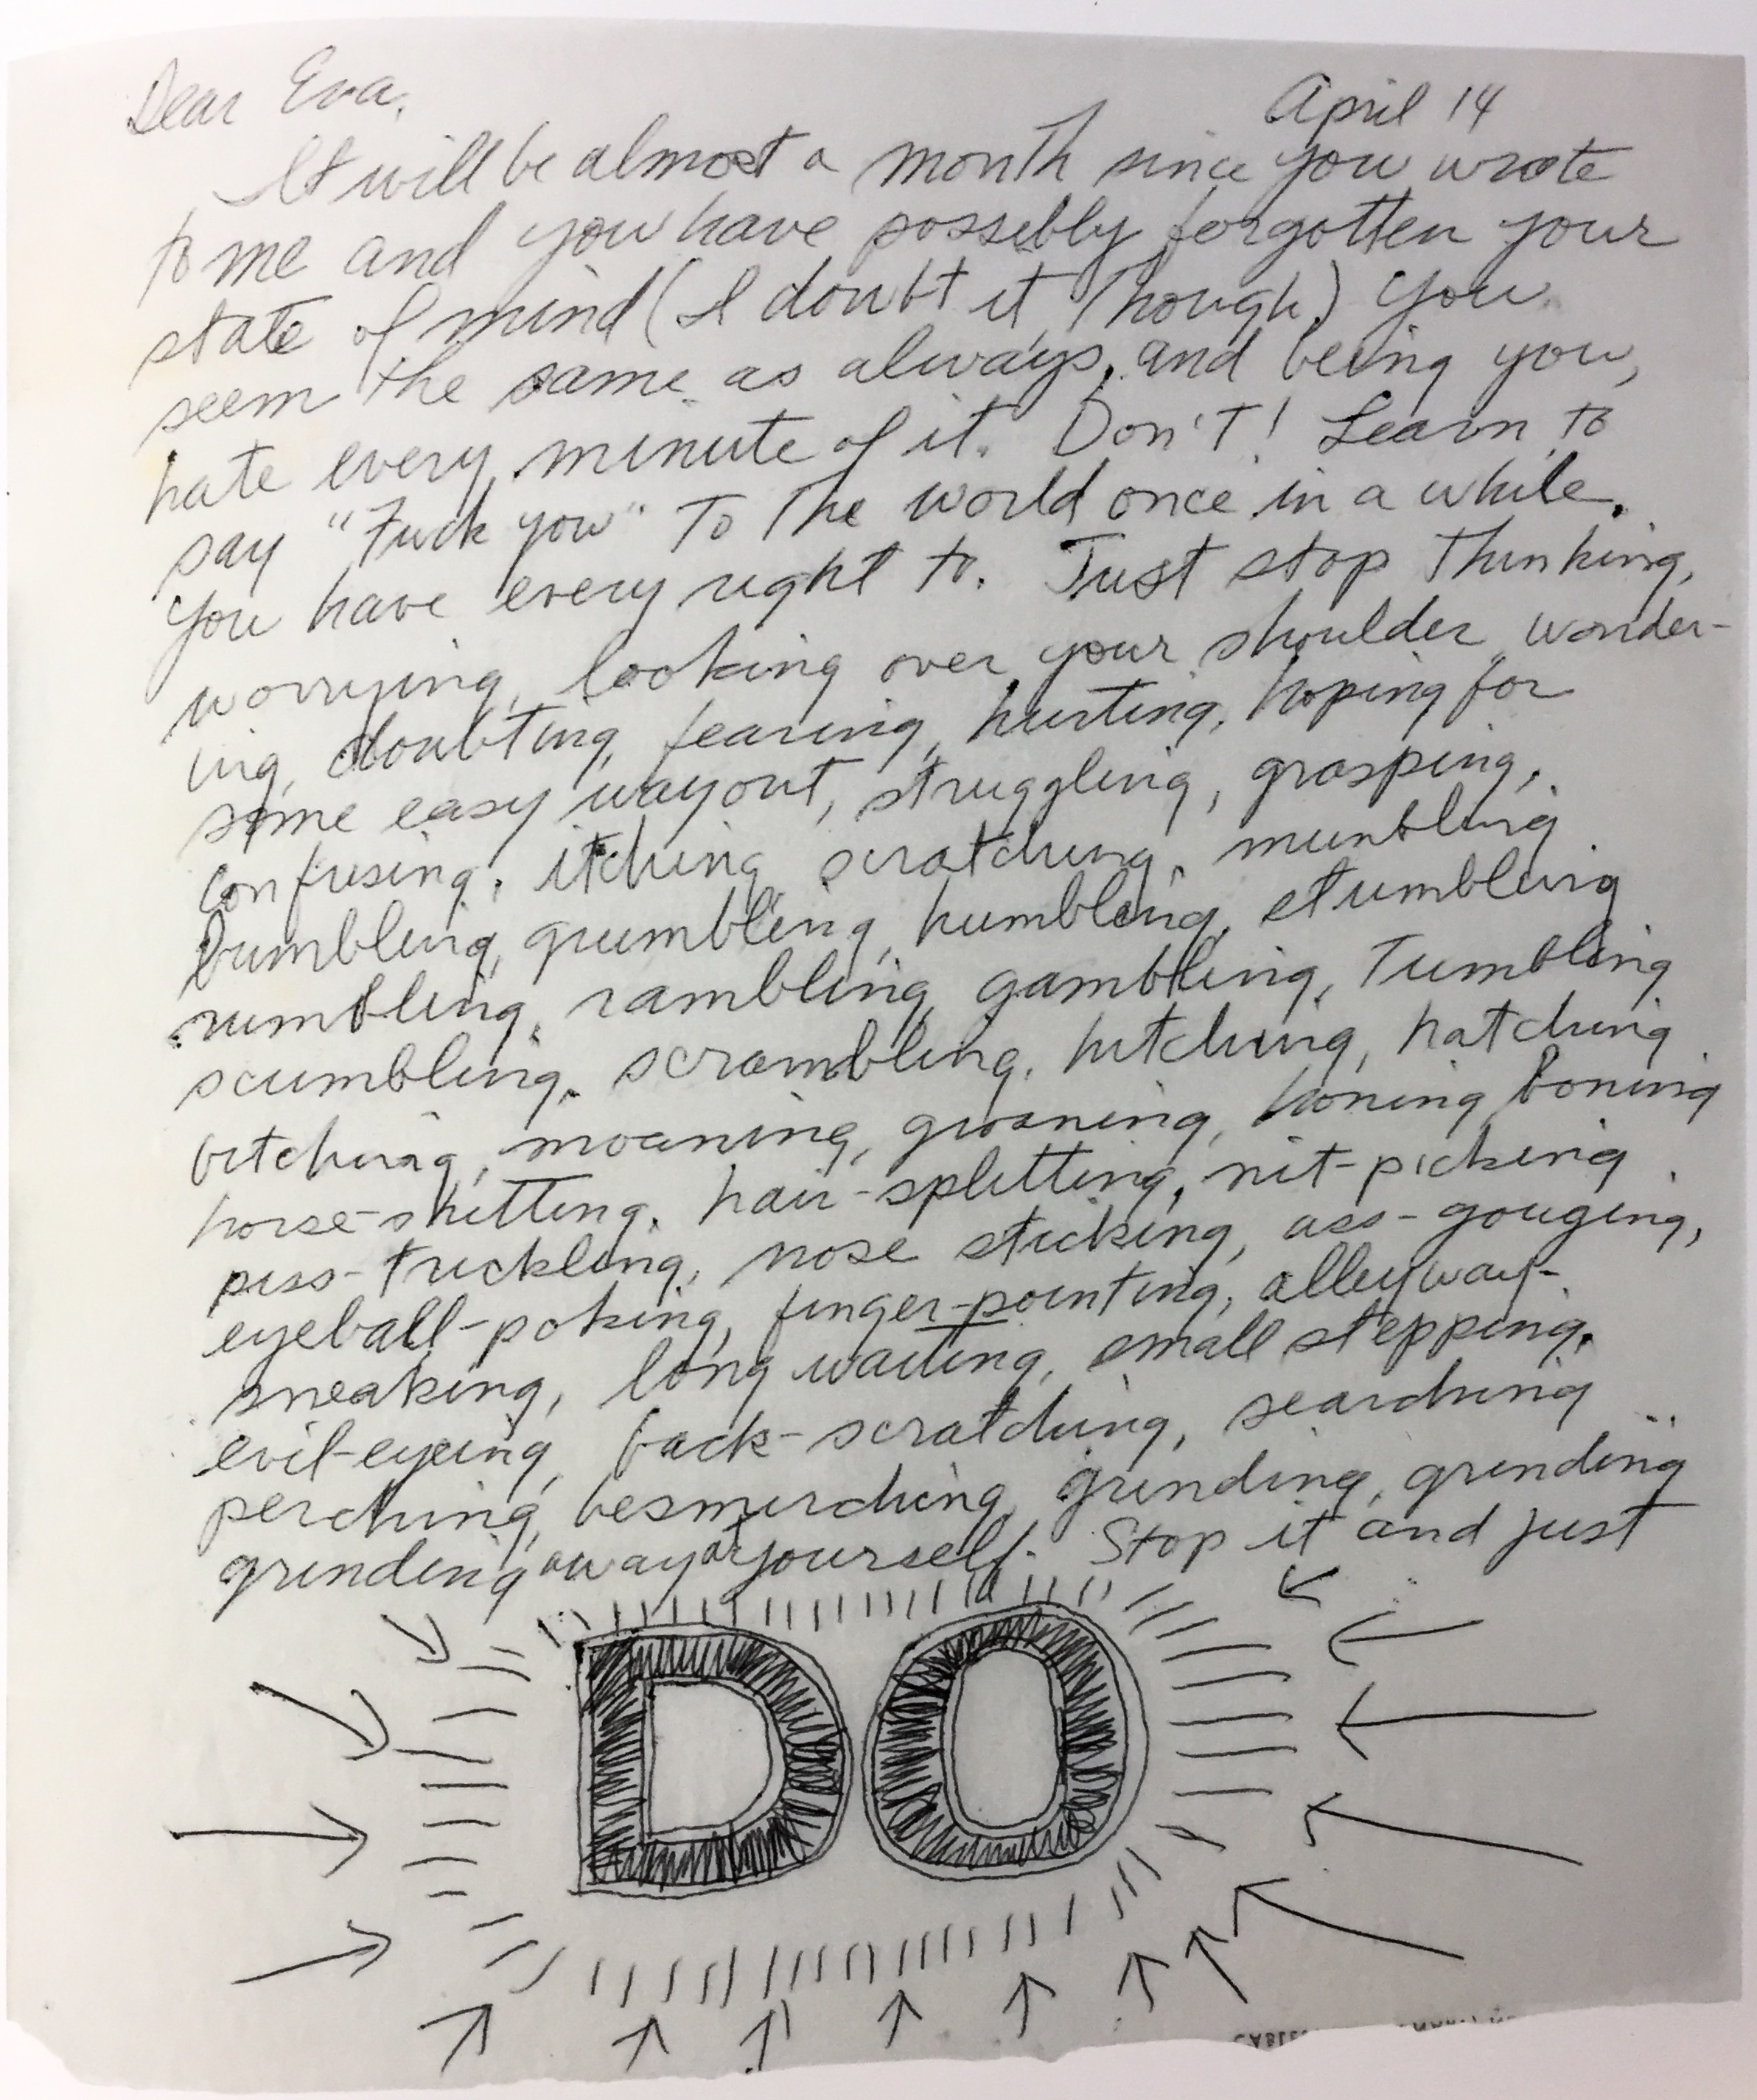 First page of a letter from Sol LeWitt to Eva Hesse, 14 April 1965